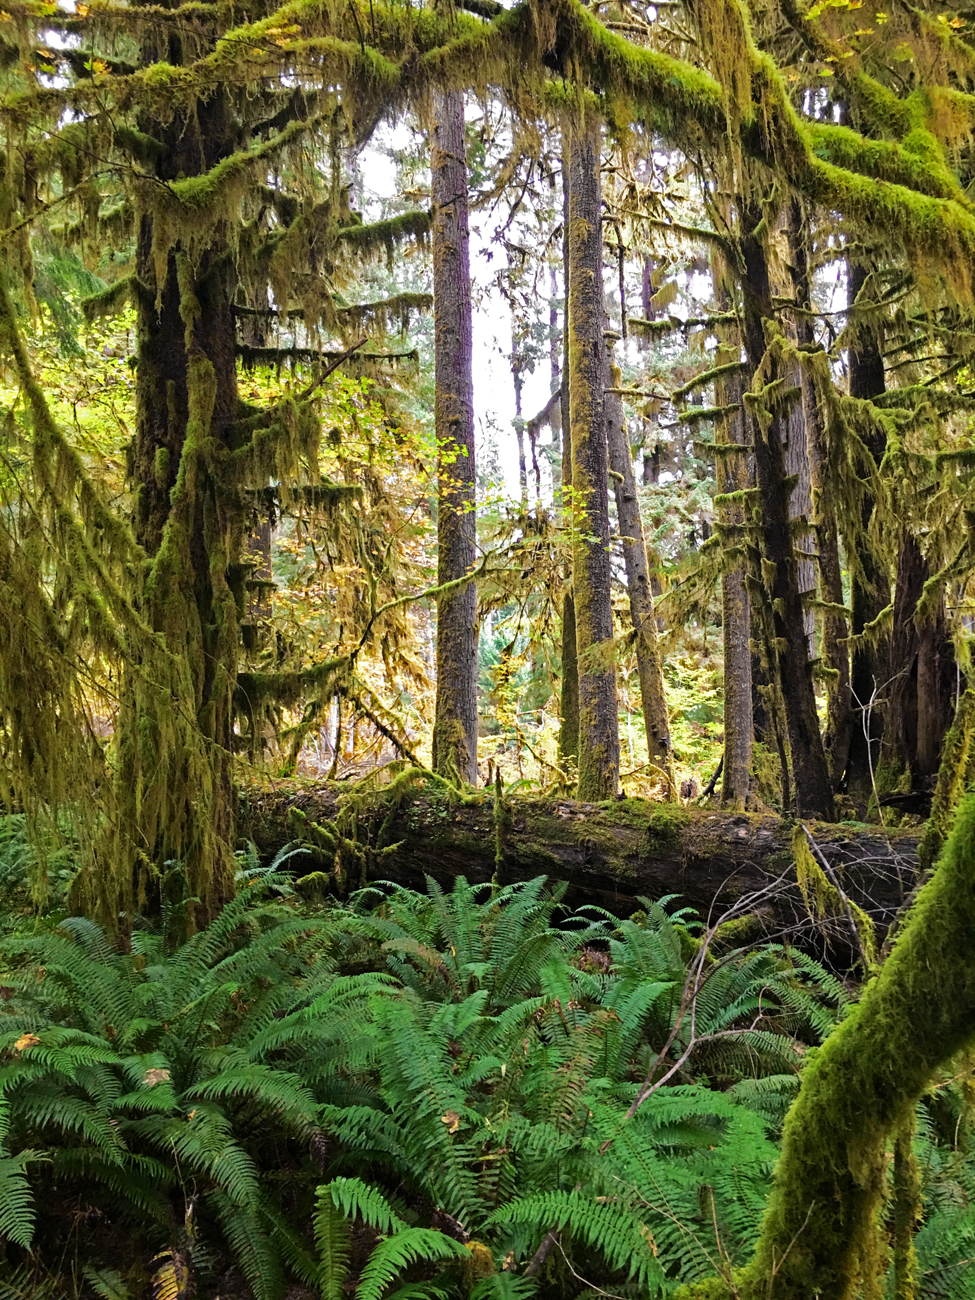 Hoh Rain Forest with trees covered in green mosses and other plants and ferns on the forest floor